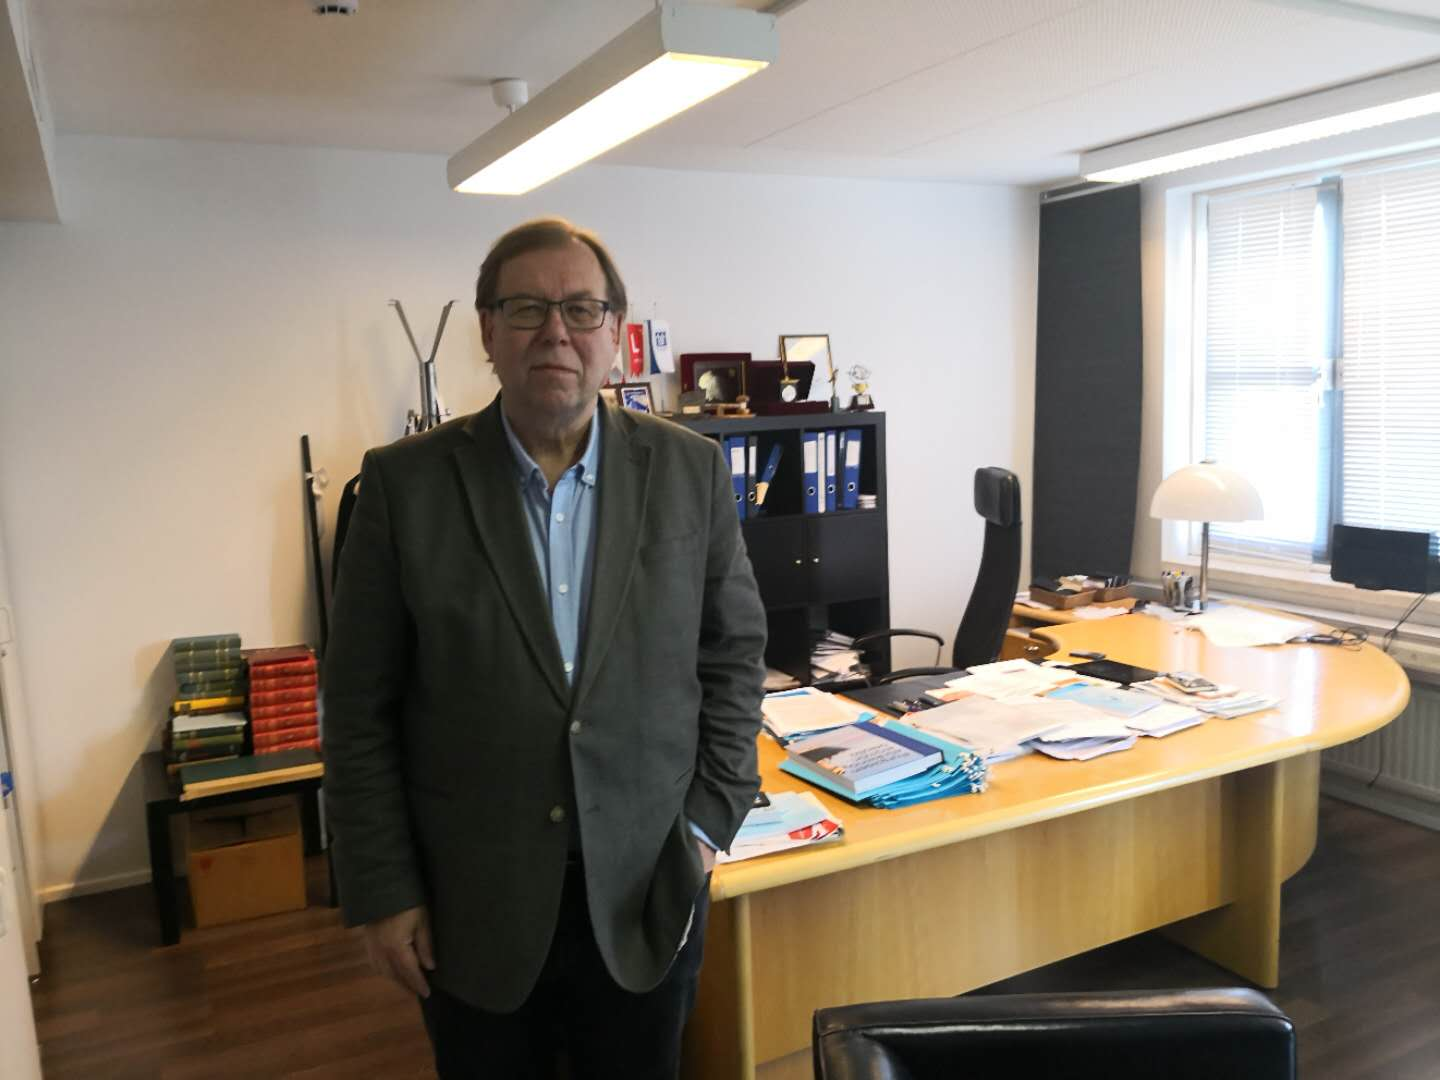 Timo Rautajoki, CEO (chief executive officer) of Lapland Chamber of Commerce